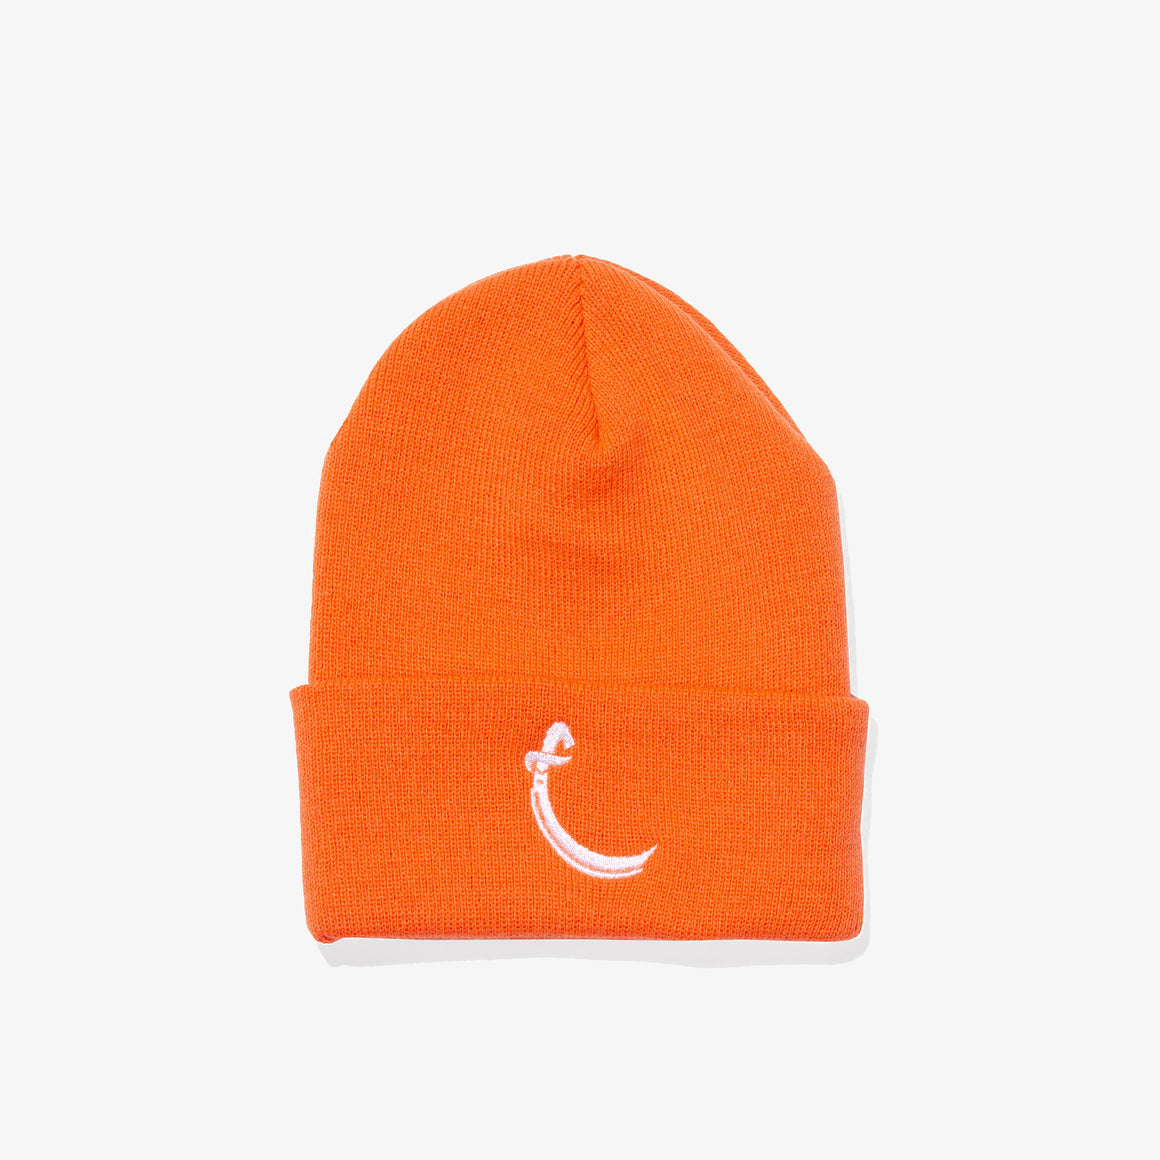 510 SWORD BEANIE (ORANGE)